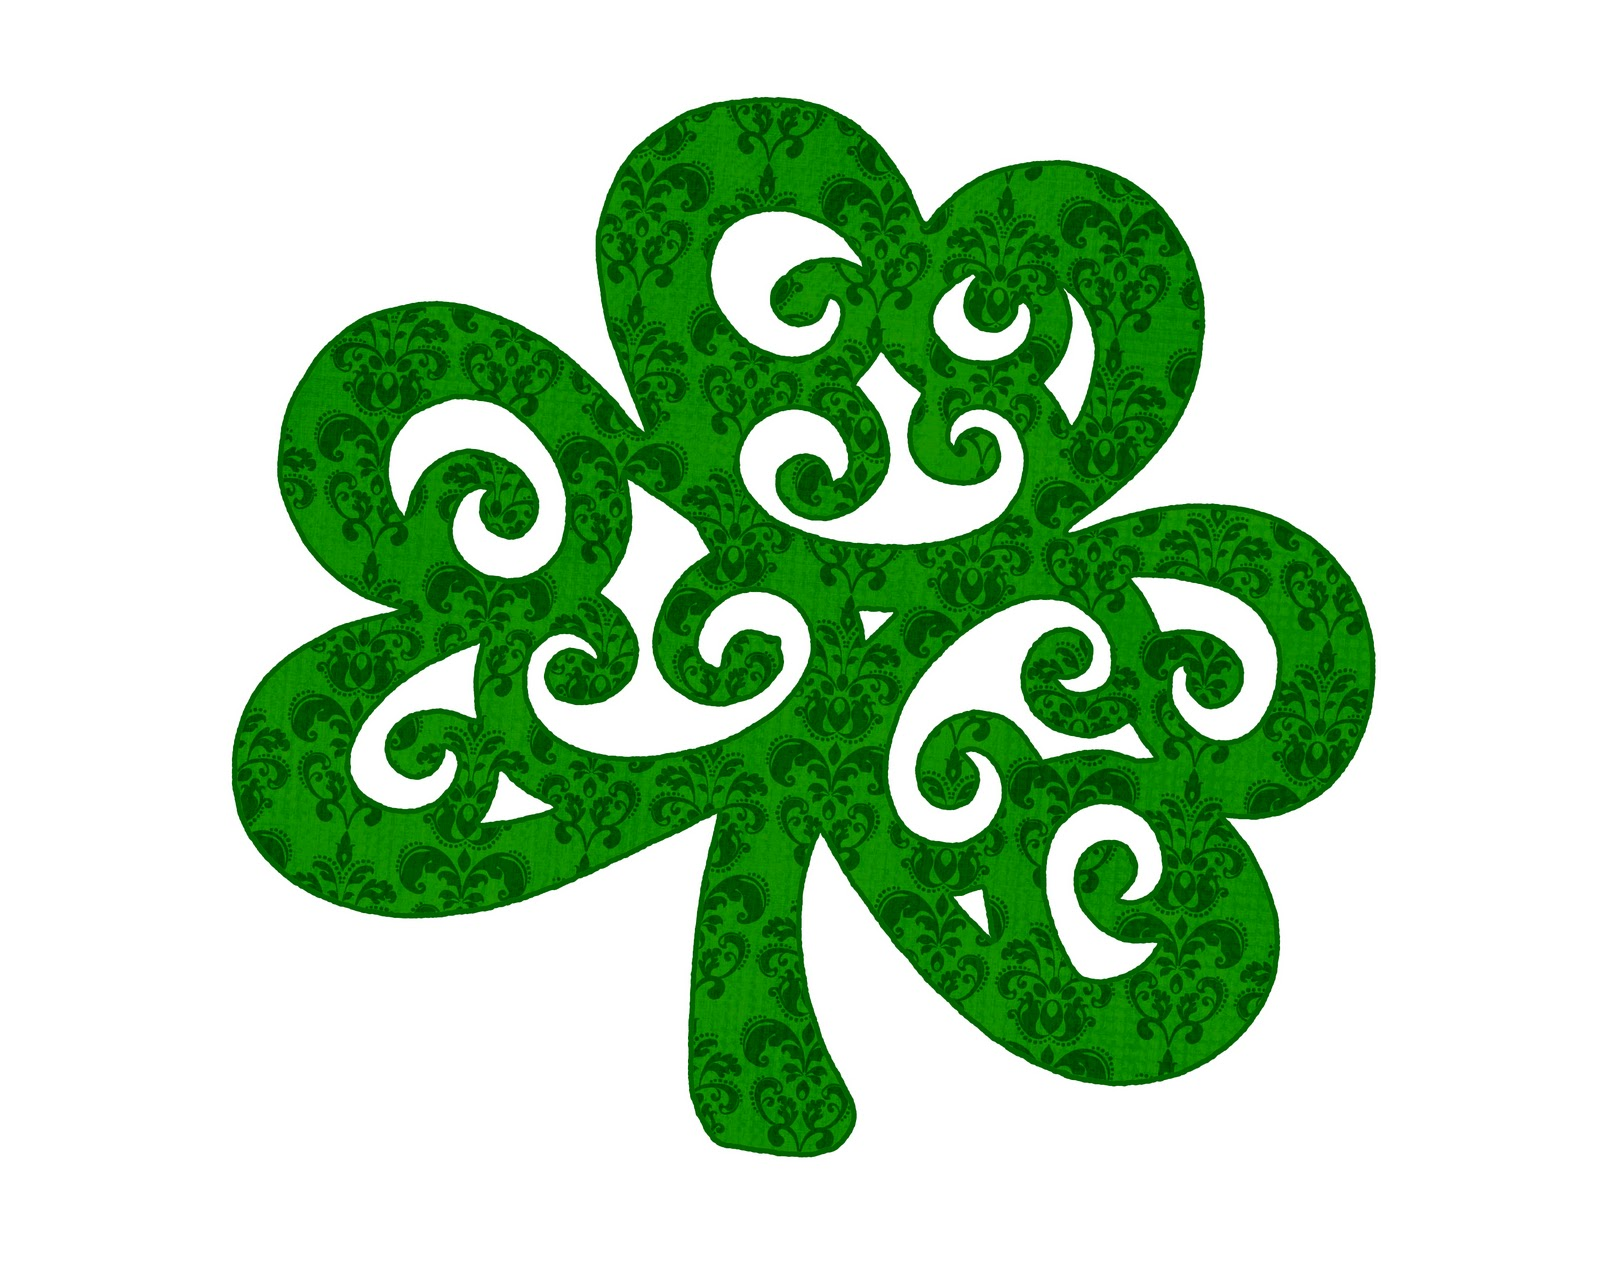 See how St Patricku0026#39;s Day is celebrated around the world   BreakingNews.ie